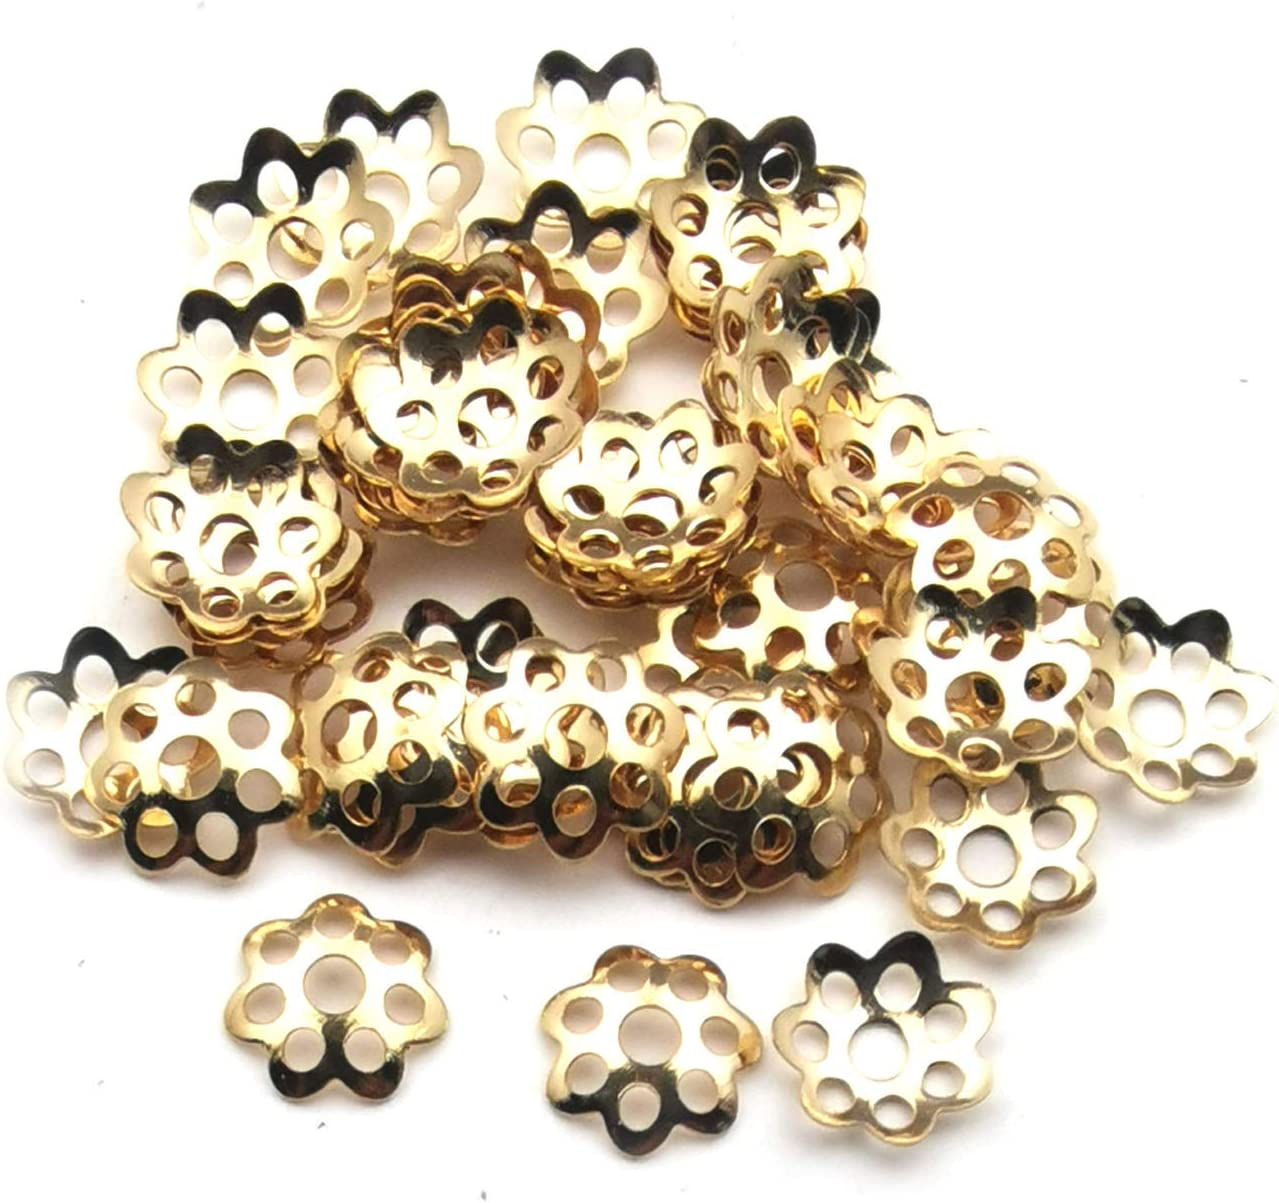 Youdiyla 1100PCS Mixed Size Flower Bead Caps Tibetan Style Flower Bead End Caps Spacers for Jewelry Making WM265